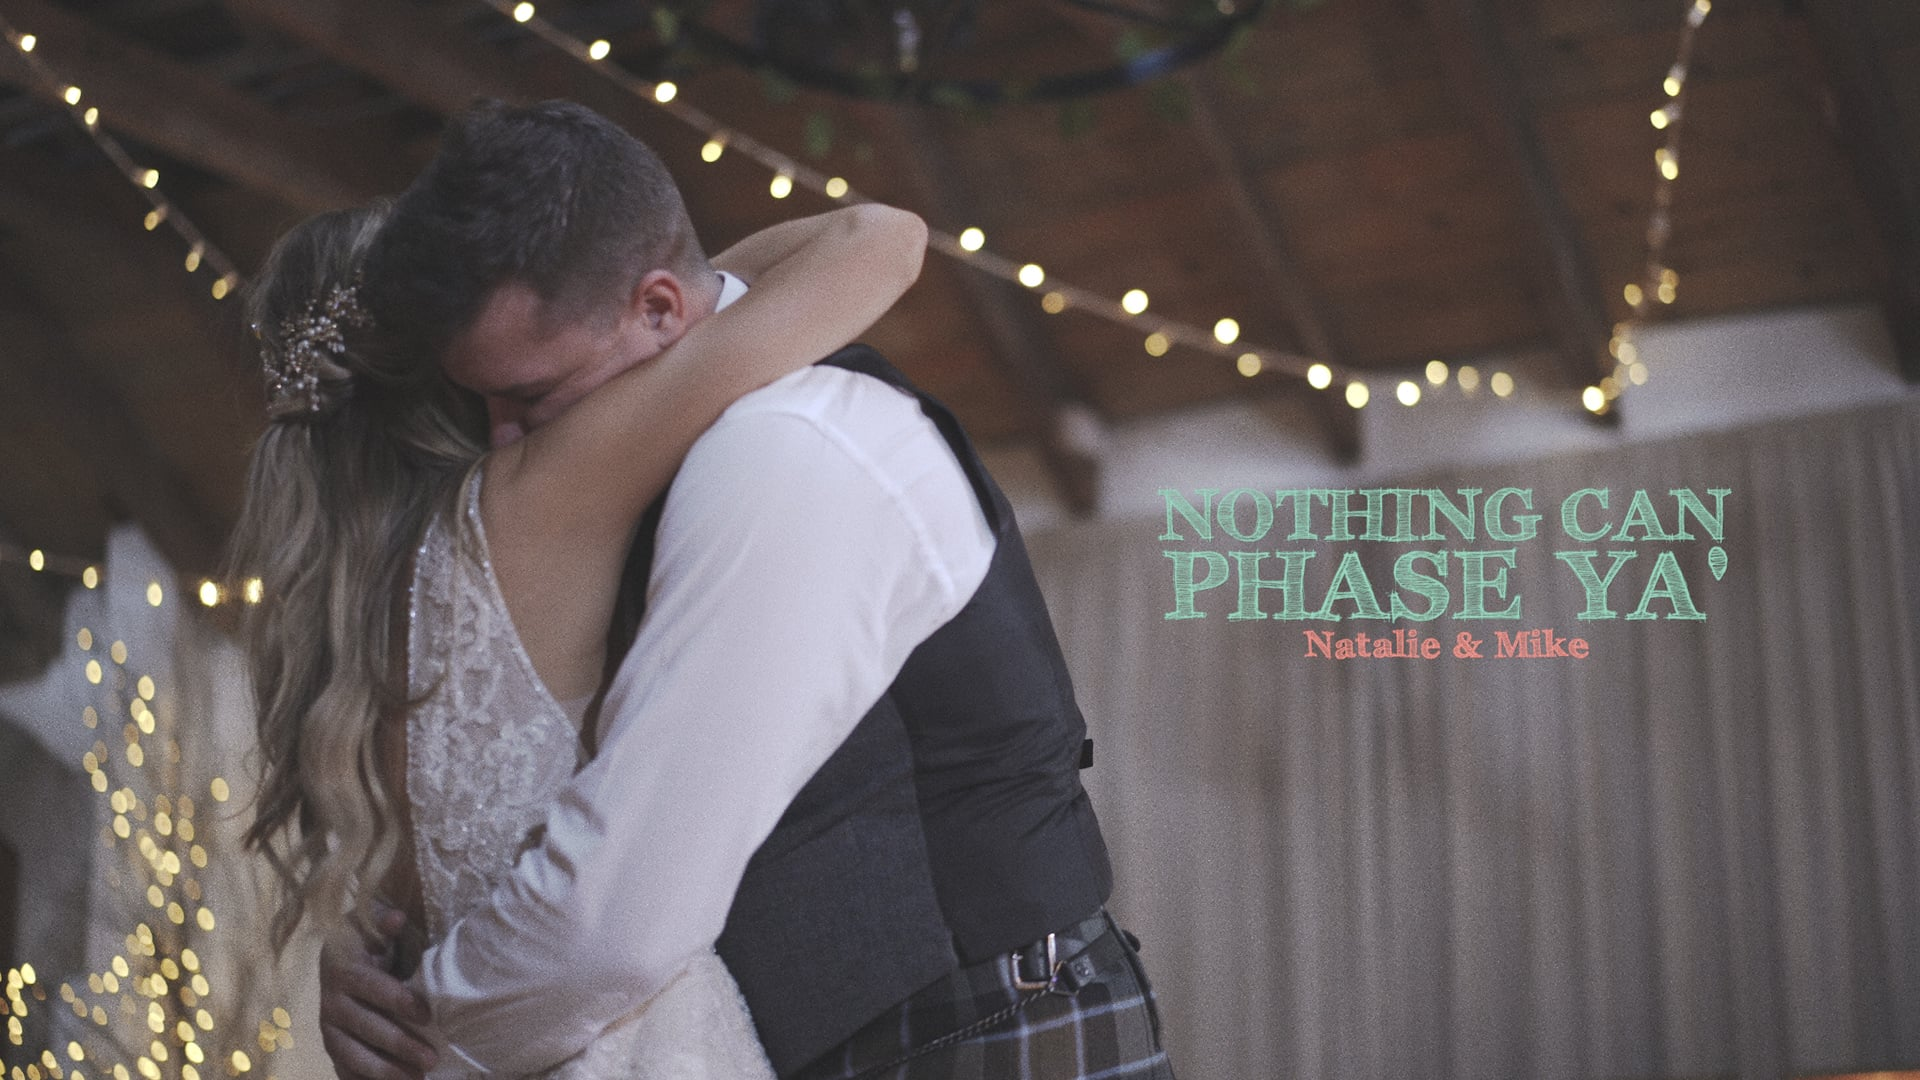 Nothing Can Phase Ya' by Natalie and Mike